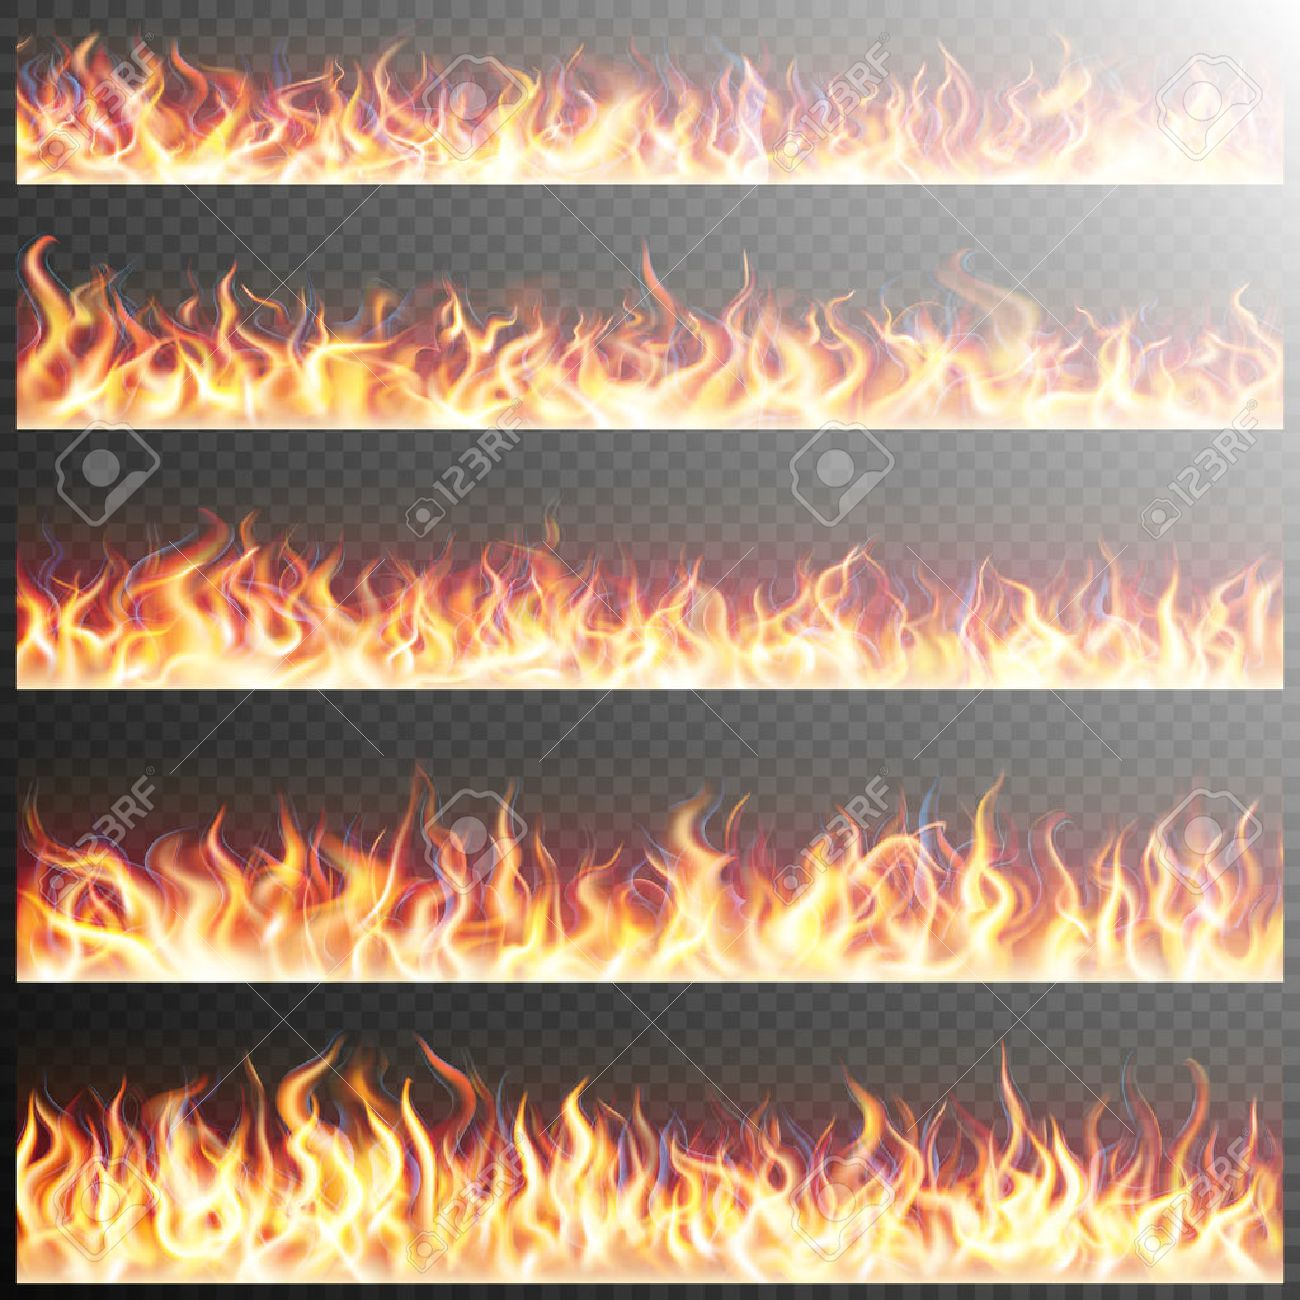 Set of realistic fire flames on transparent background. Special effects. Translucent elements. Transparency grid. EPS 10 vector file included - 57406032